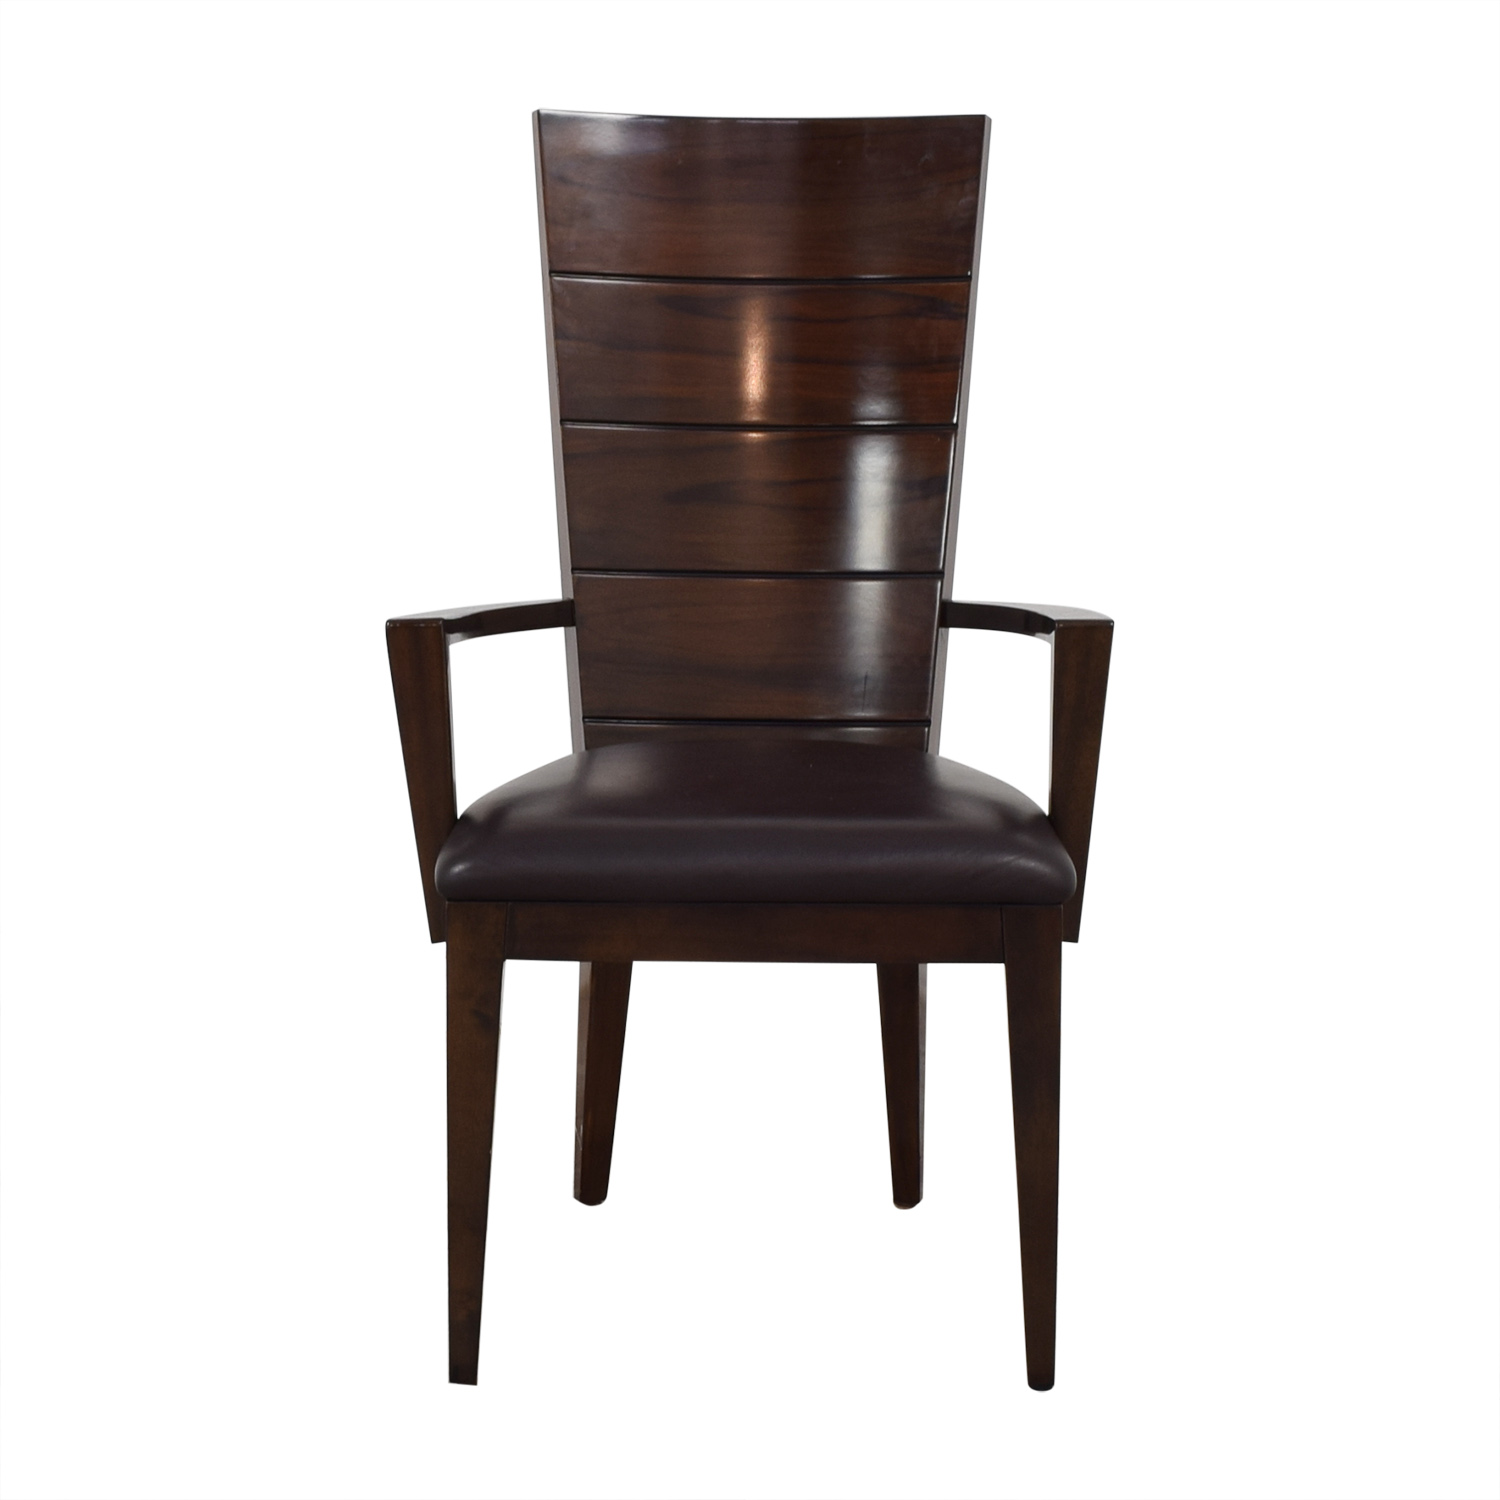 buy Elio Elio High Gloss Wood and Leather Chair online